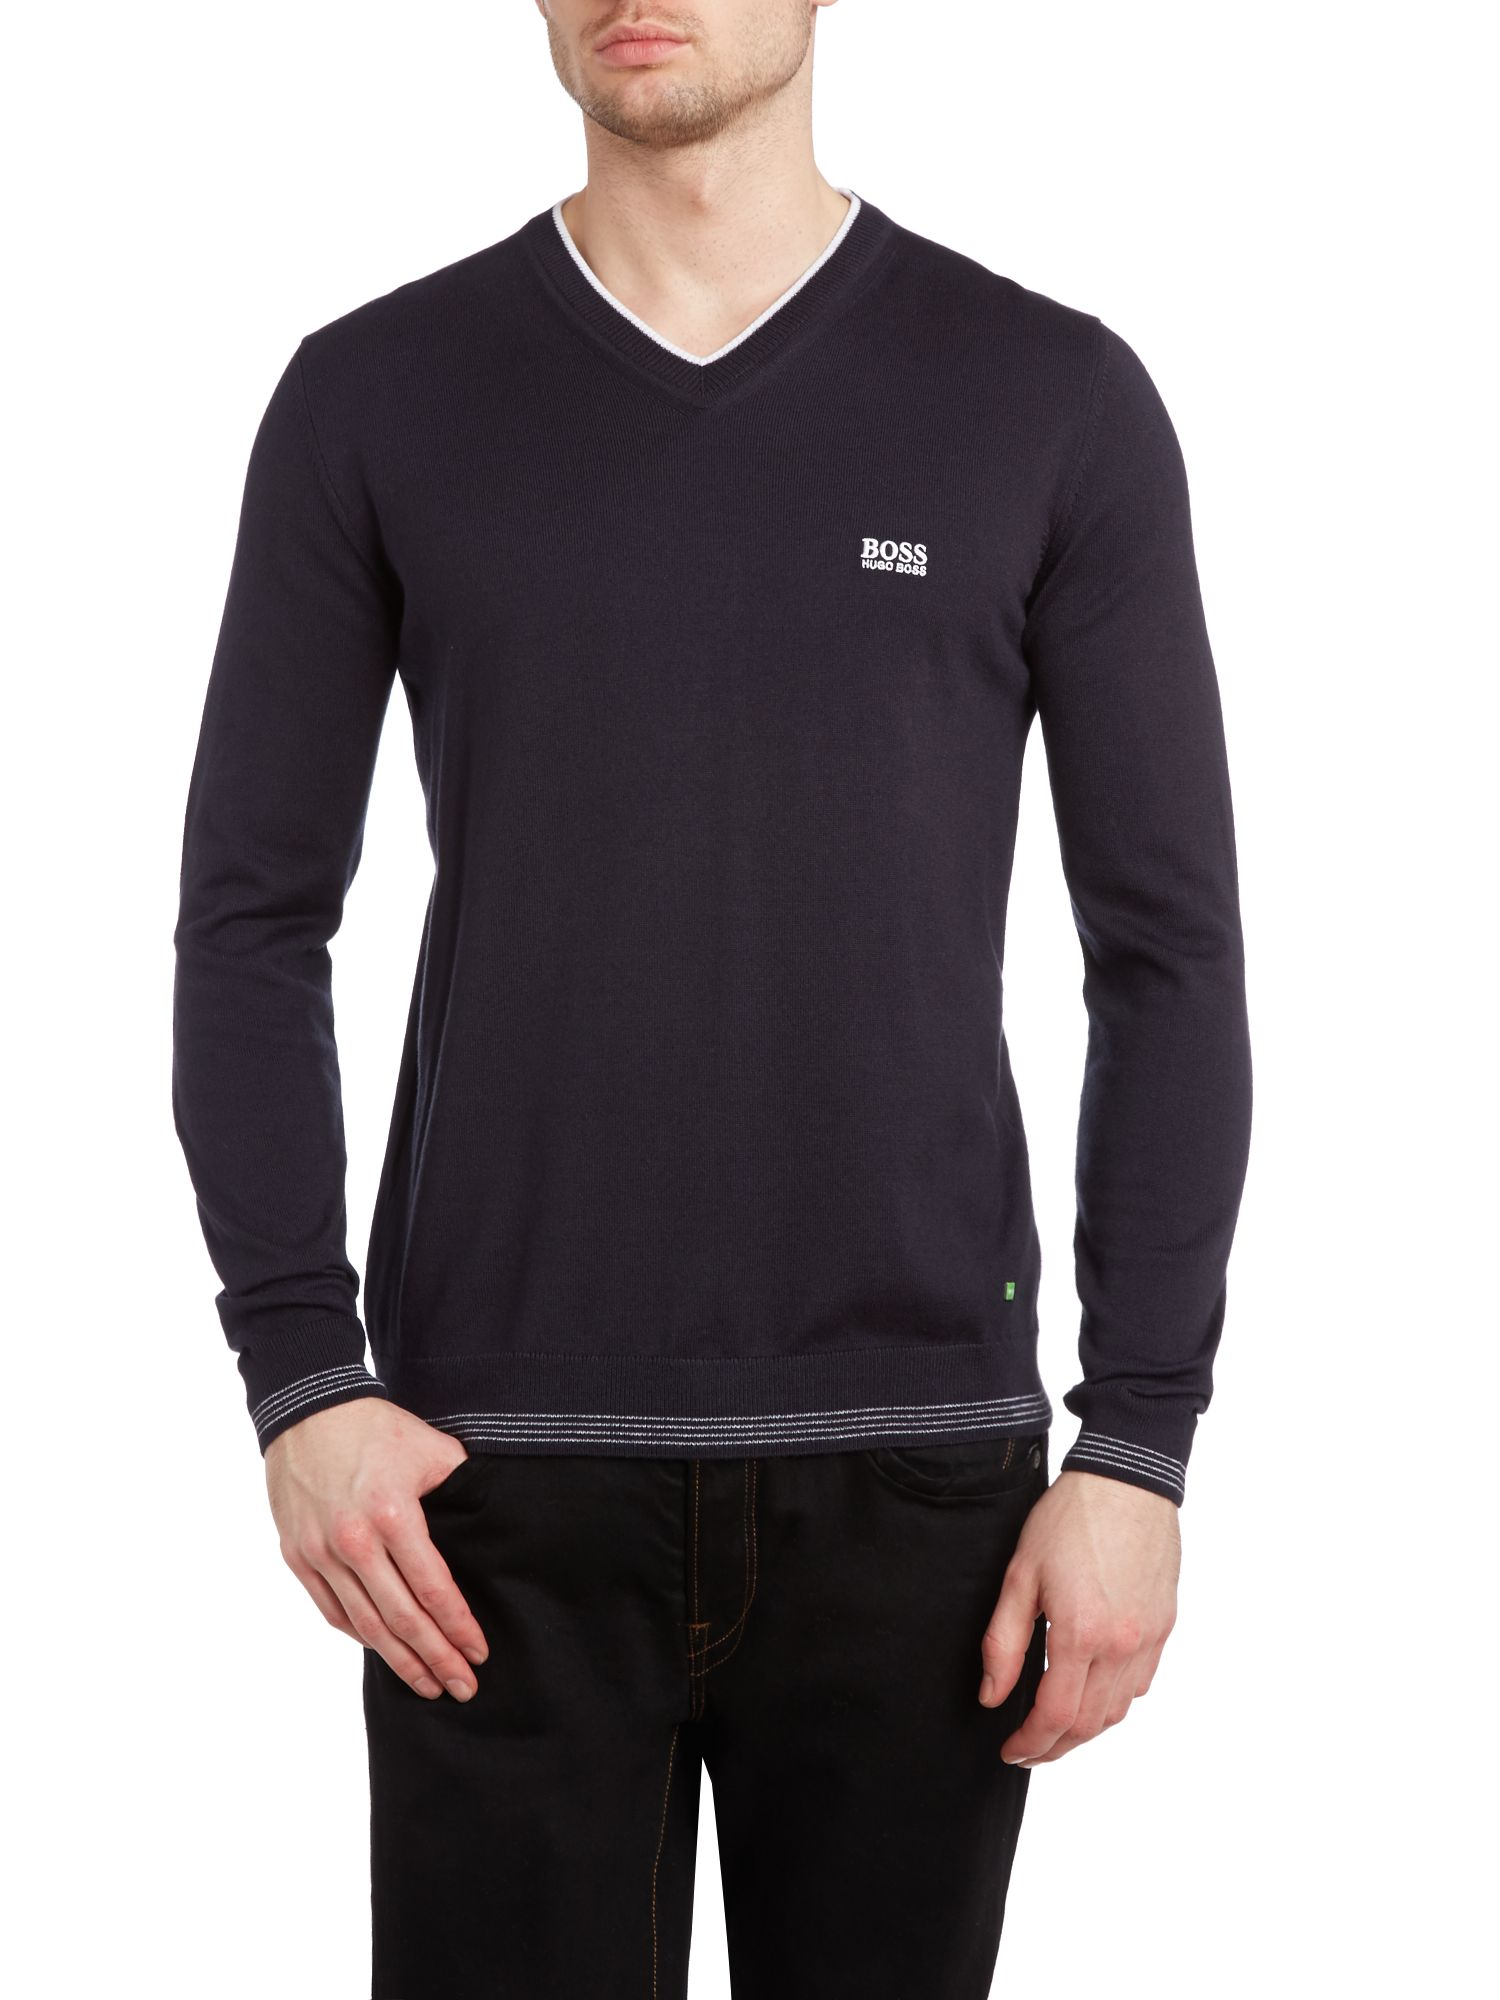 Vee neck logo jumper